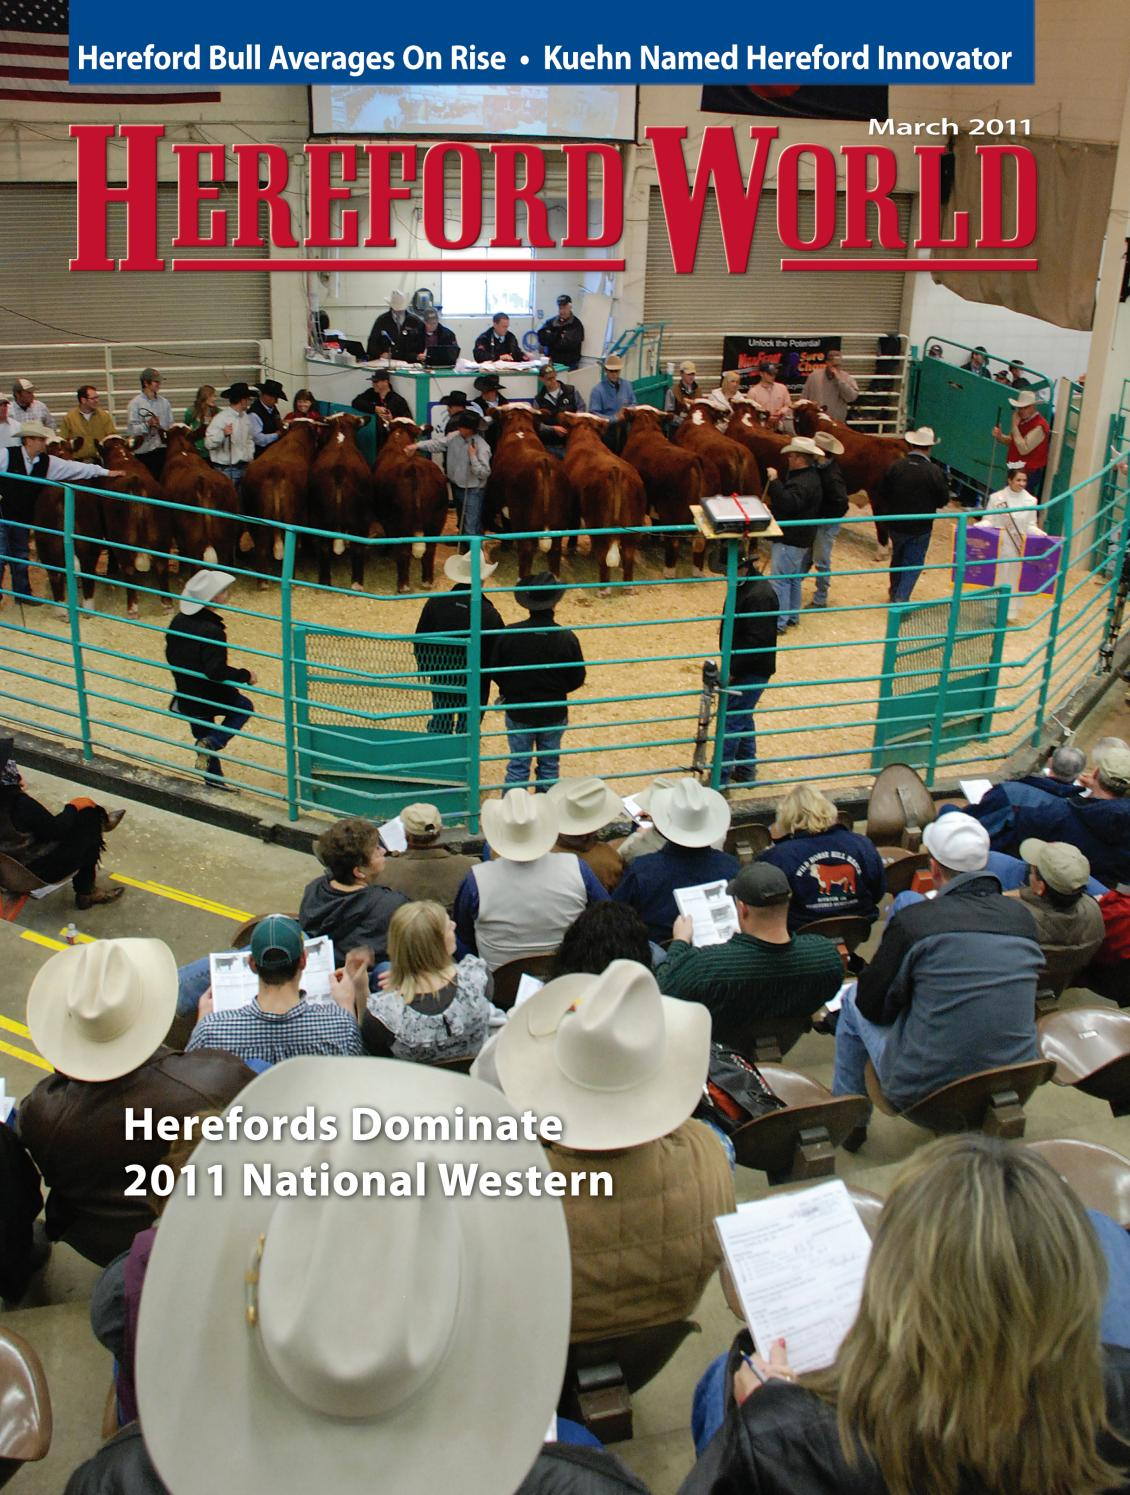 March 2011 Hereford World